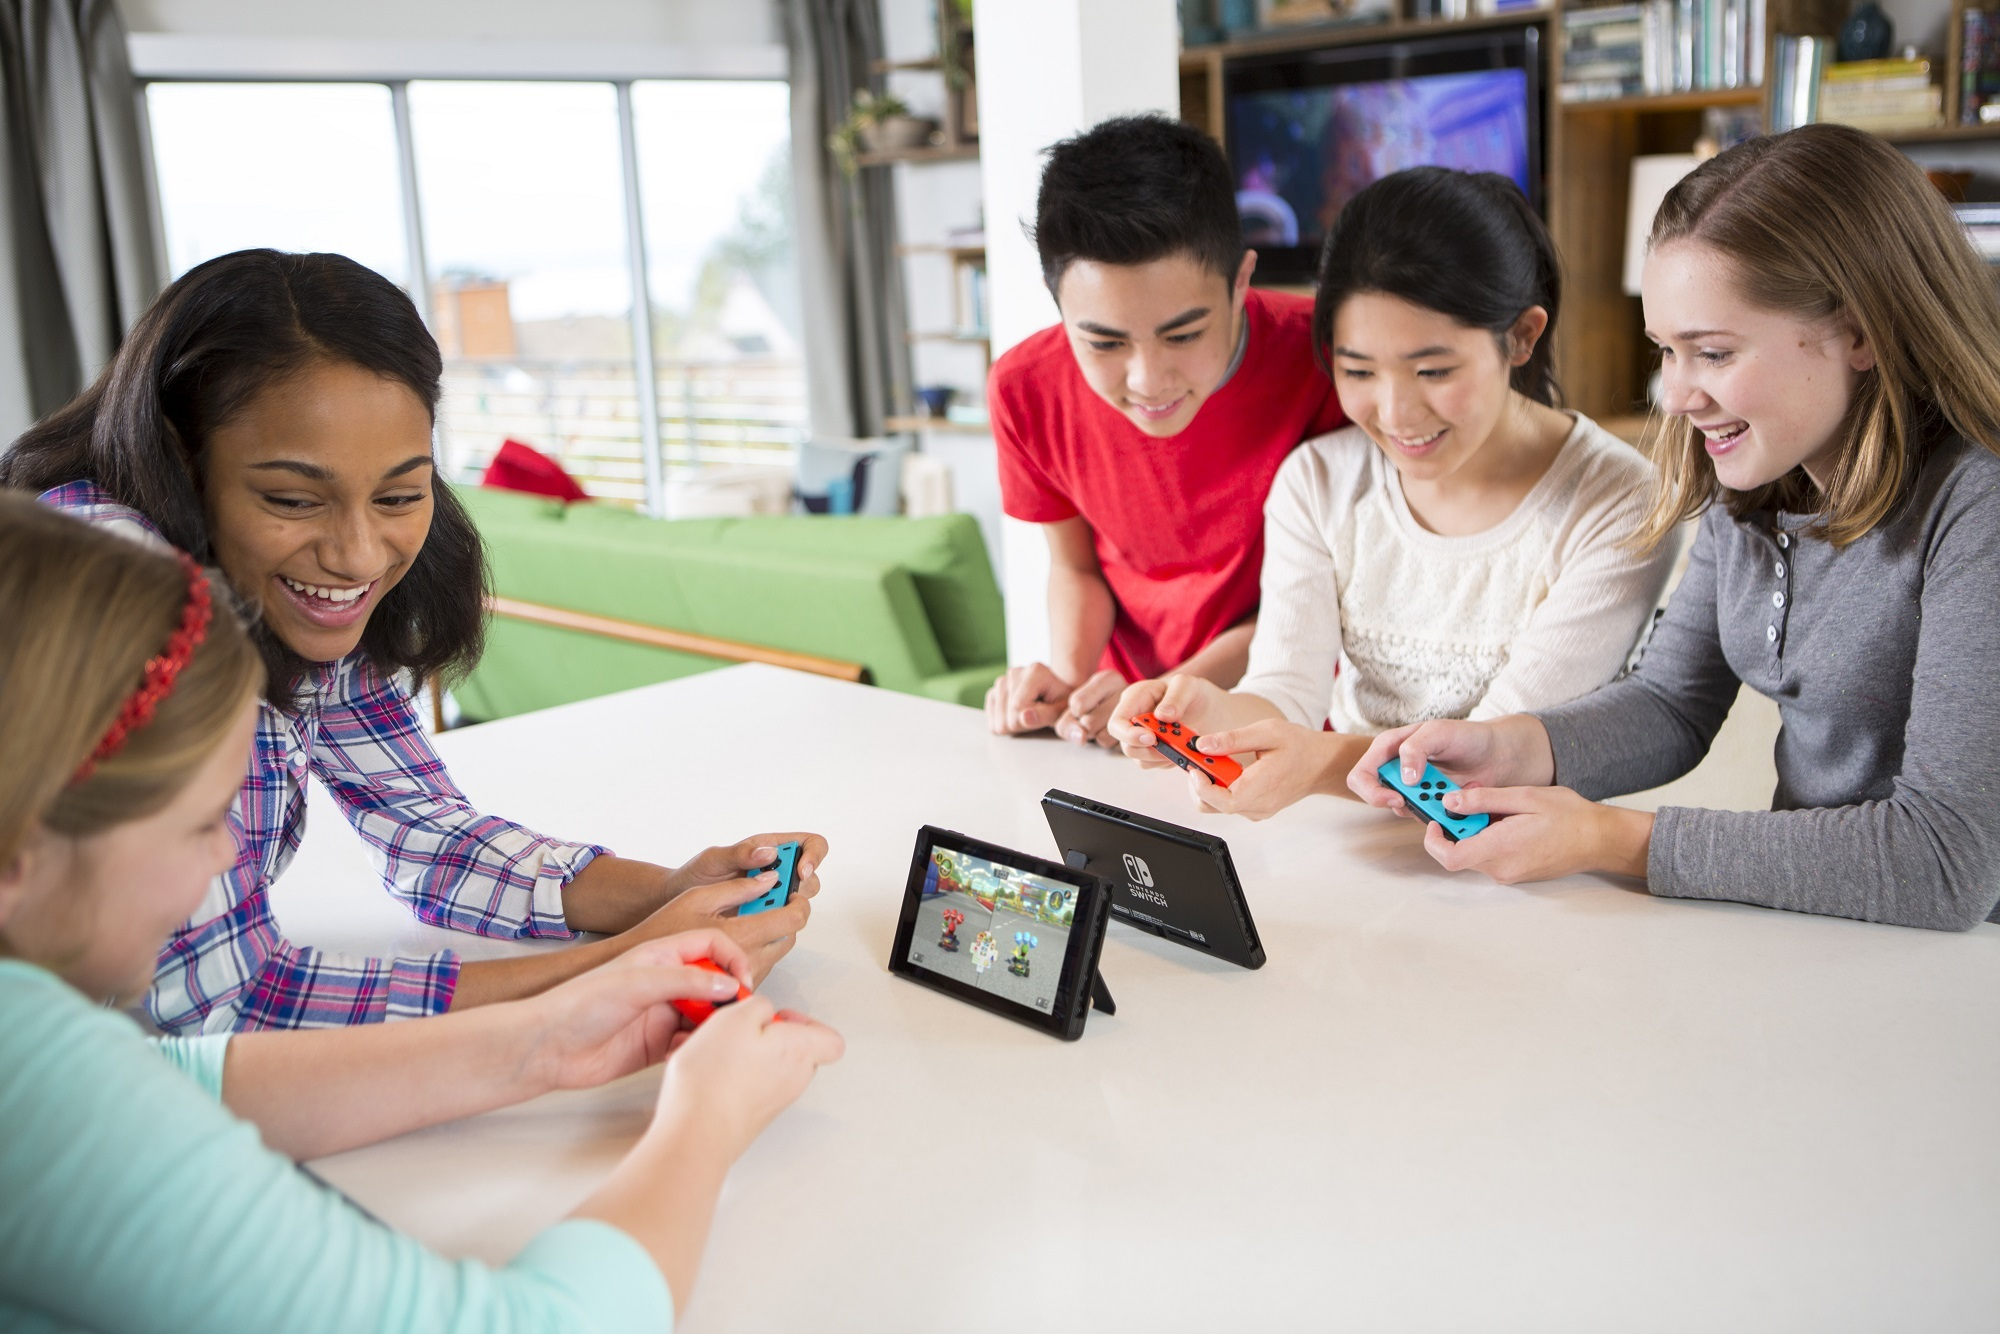 This is the second month in a row that Nintendo Switch has led the pack in video game hardware sales, following a record-breaking launch in March. (Photo: Business Wire)